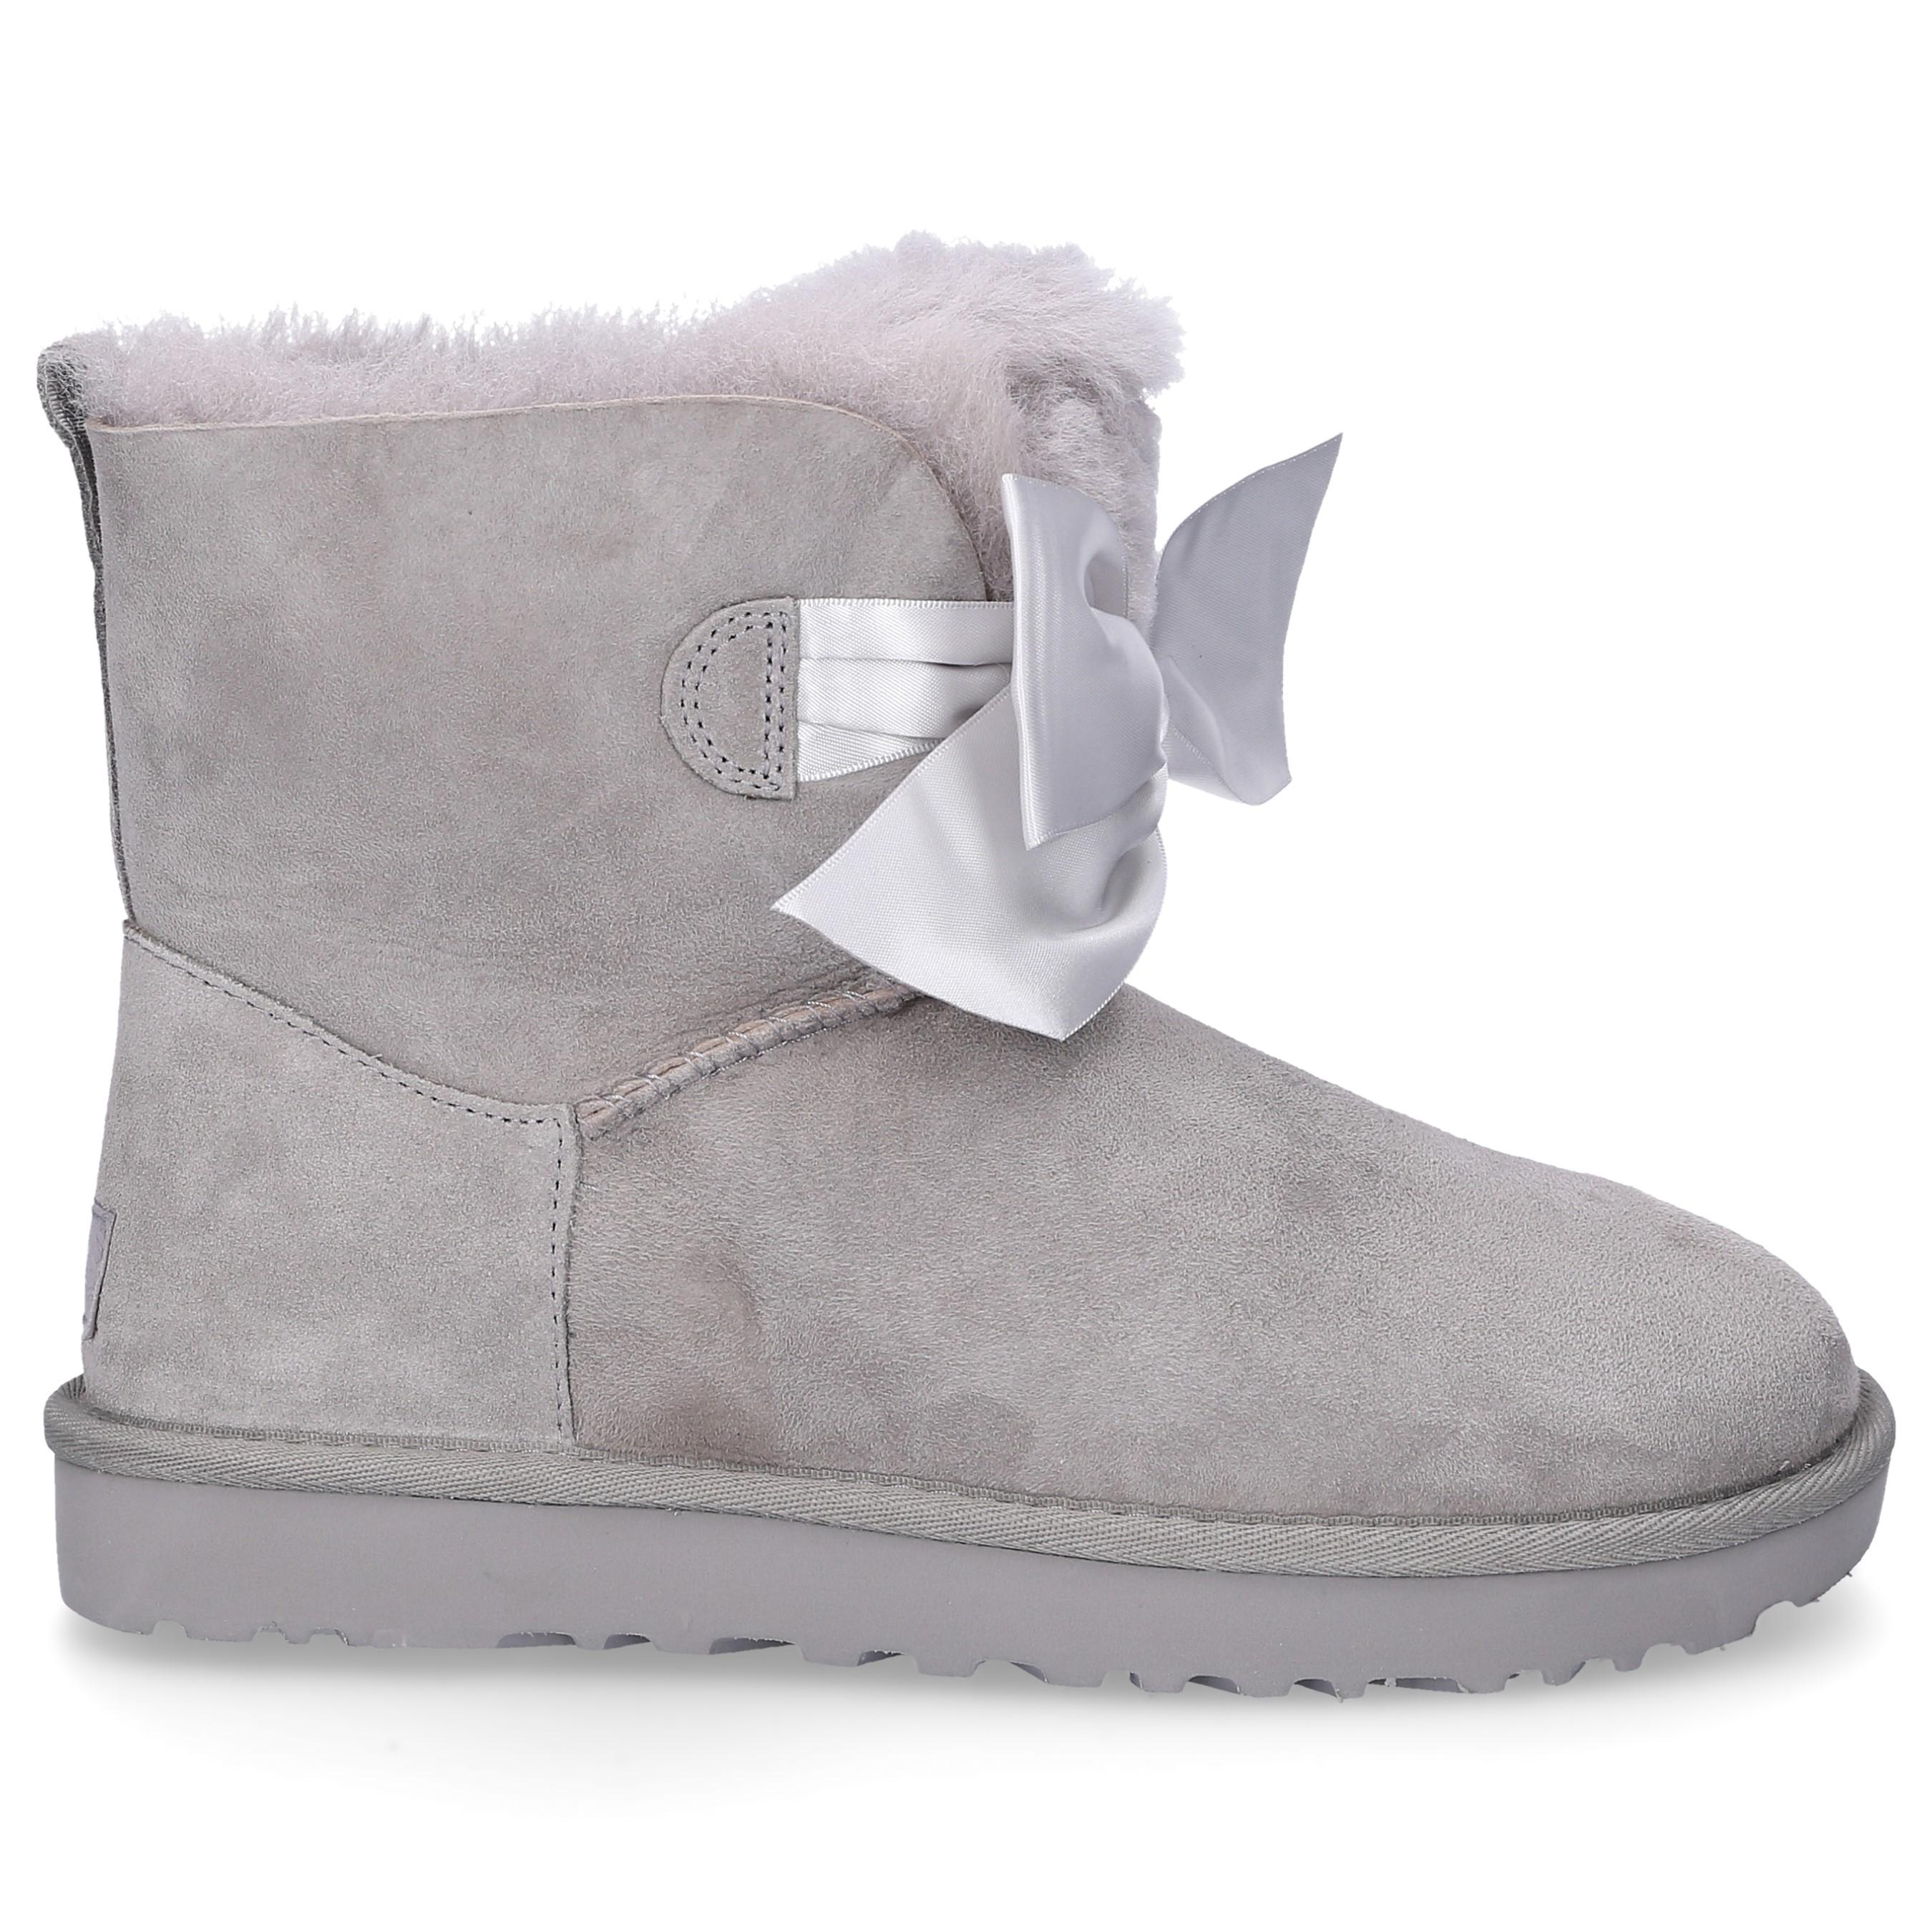 d9523784916 Women's Ankle Boots Gray Gita Bow